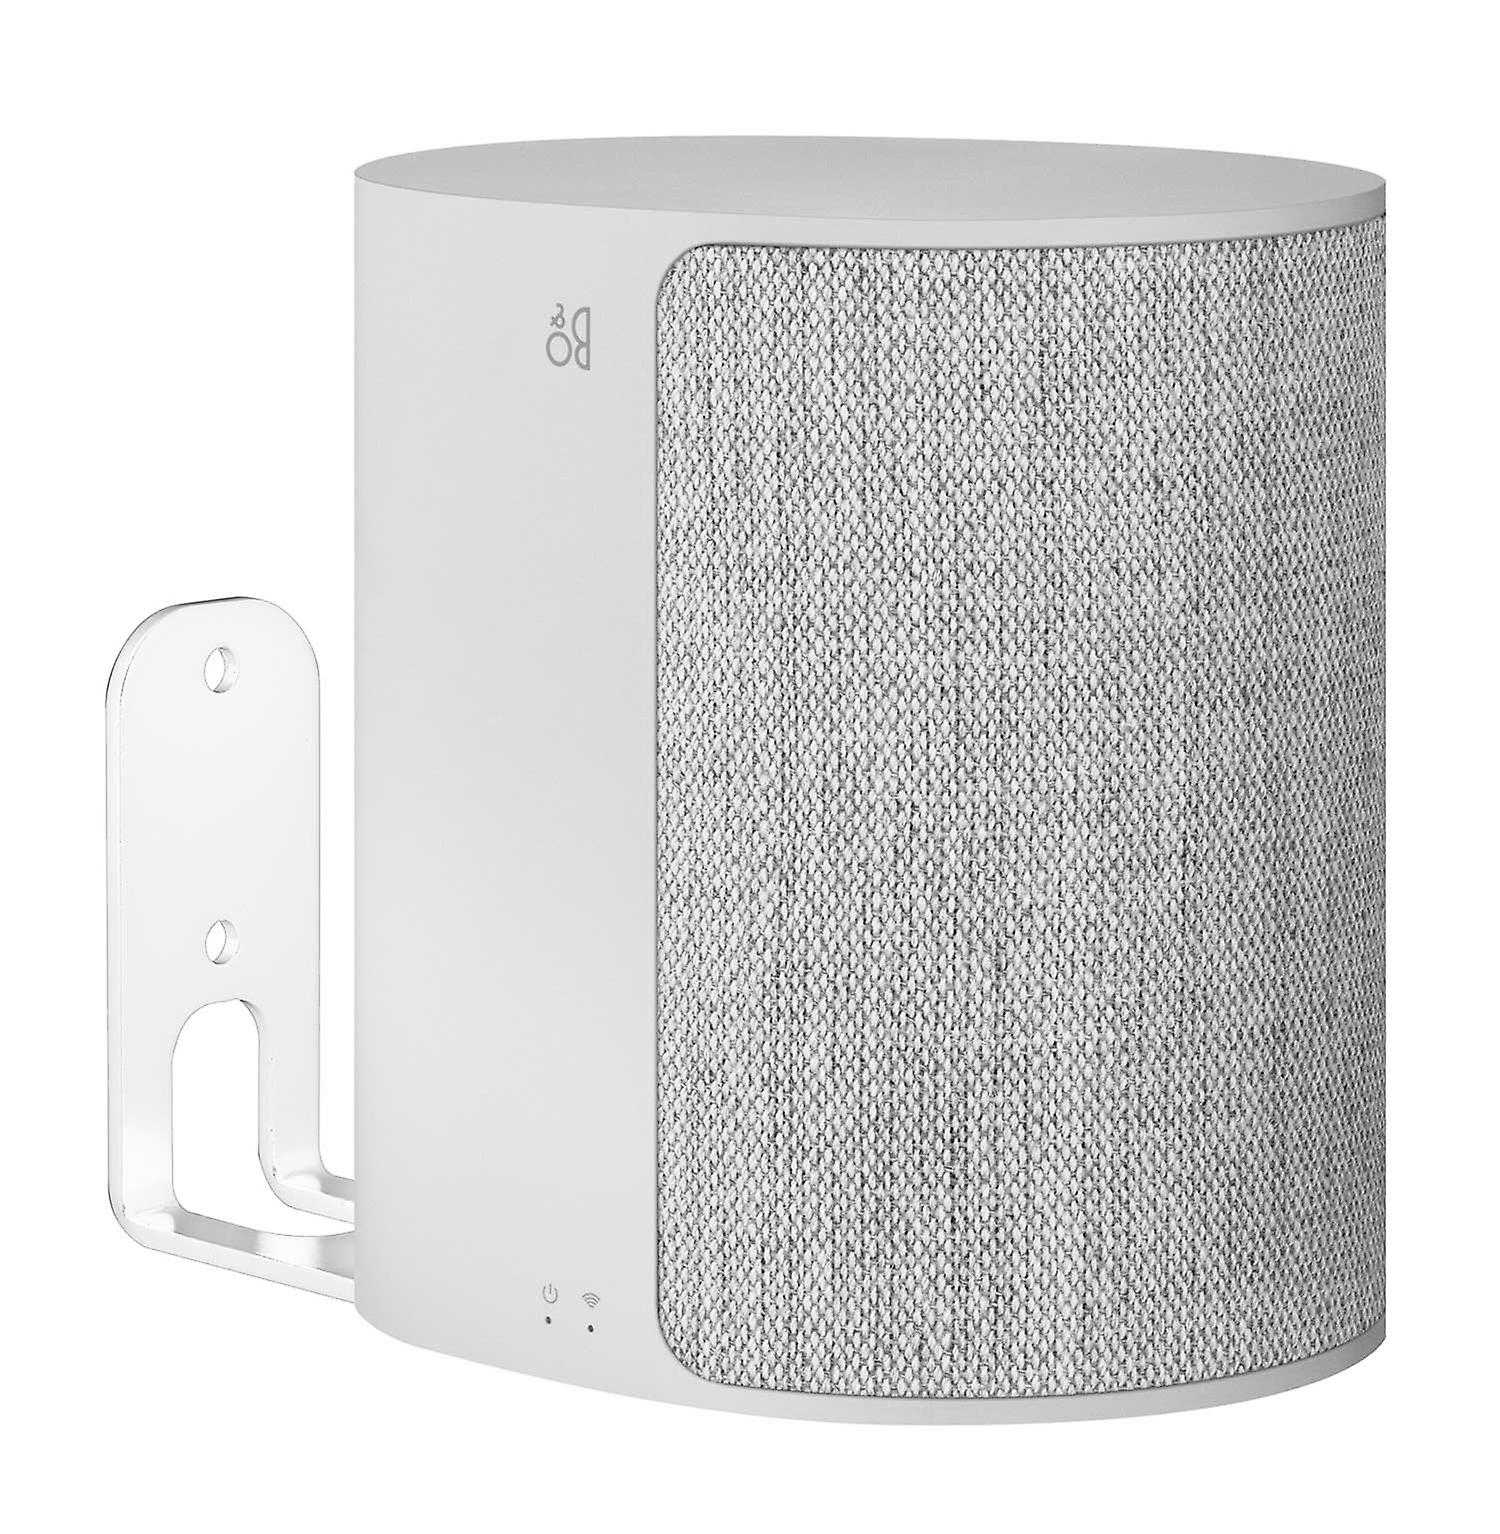 Vebos wall mount B&O BeoPlay M3 rotatable white